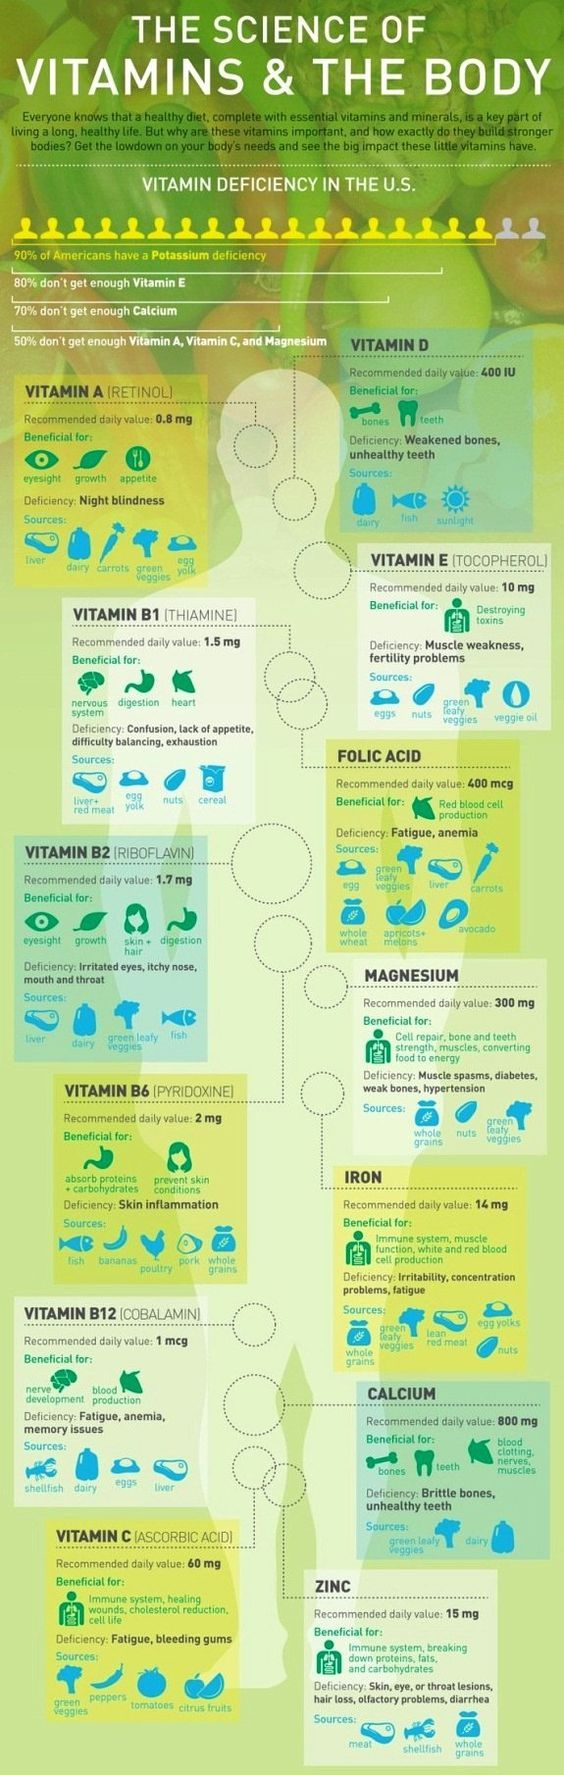 How do #vitamins and #minerals affect the body? Look at this chart! Check out our Seki Edge products at sekiedge.com